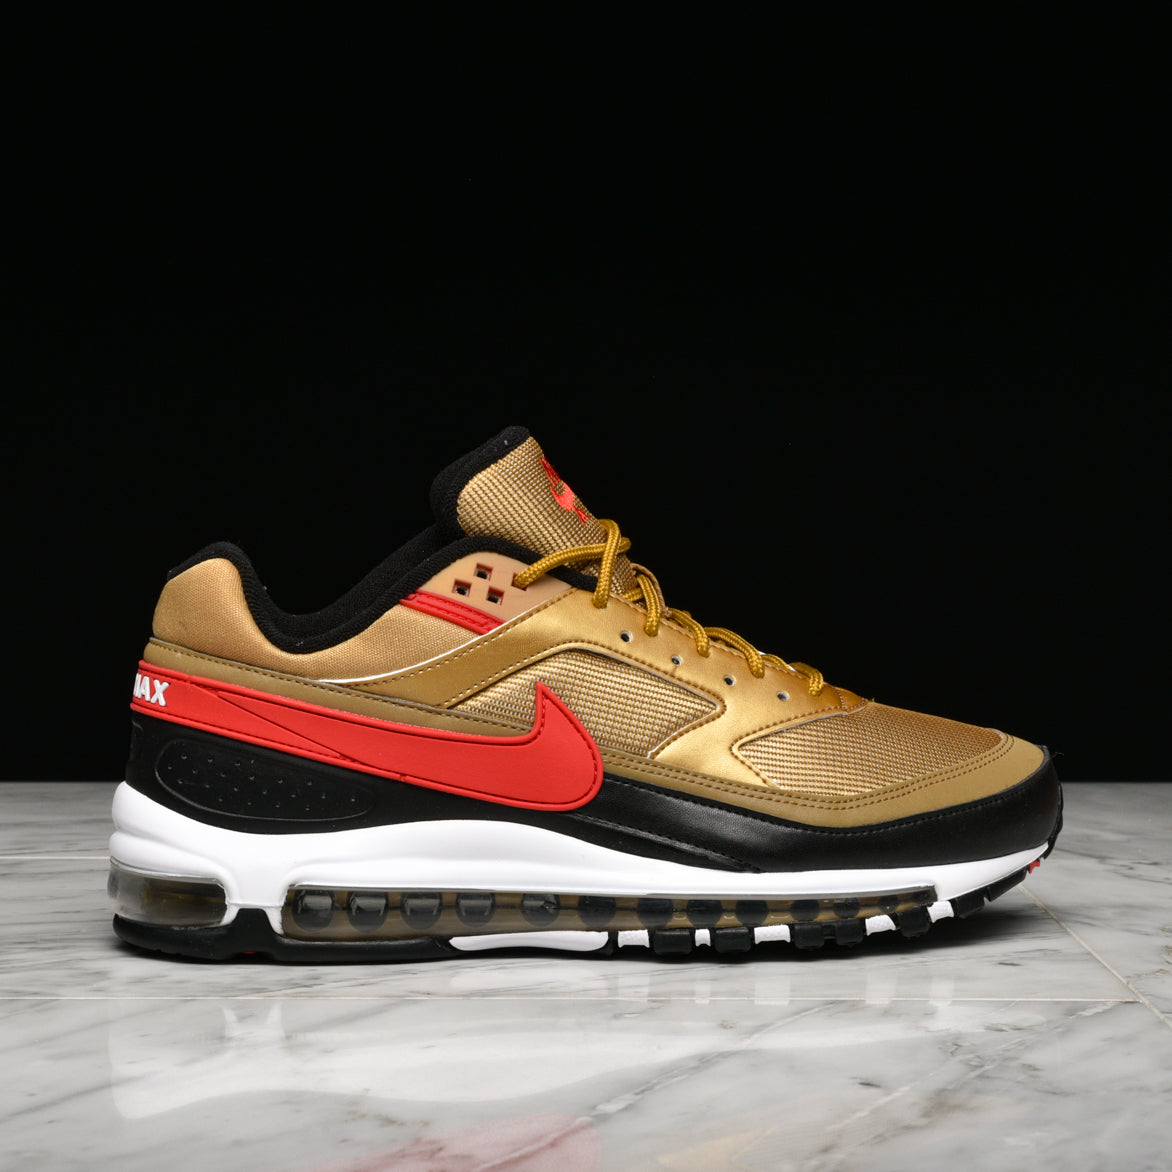 new style d6619 cc3c3 AIR MAX 97/BW - METALLIC GOLD / UNIVERSITY RED